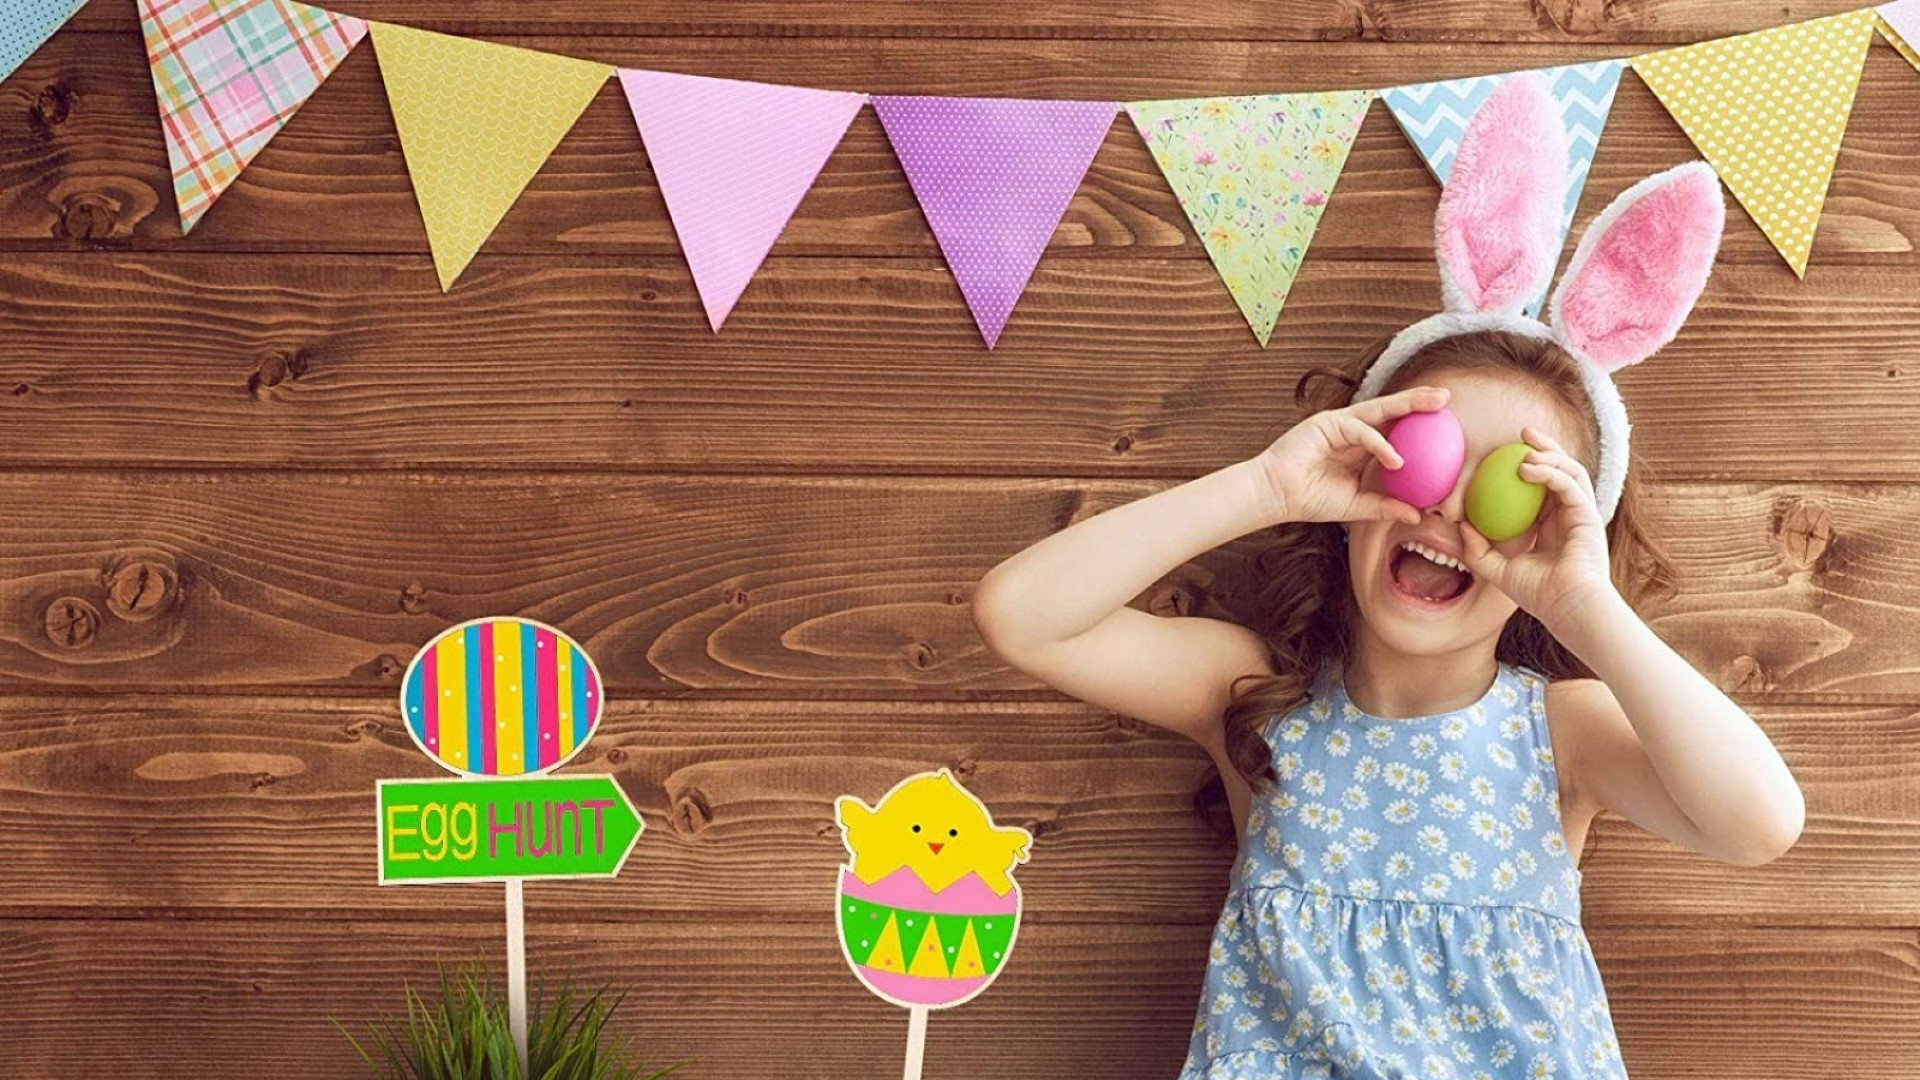 All you really need to organise your very own Easter egg hunt